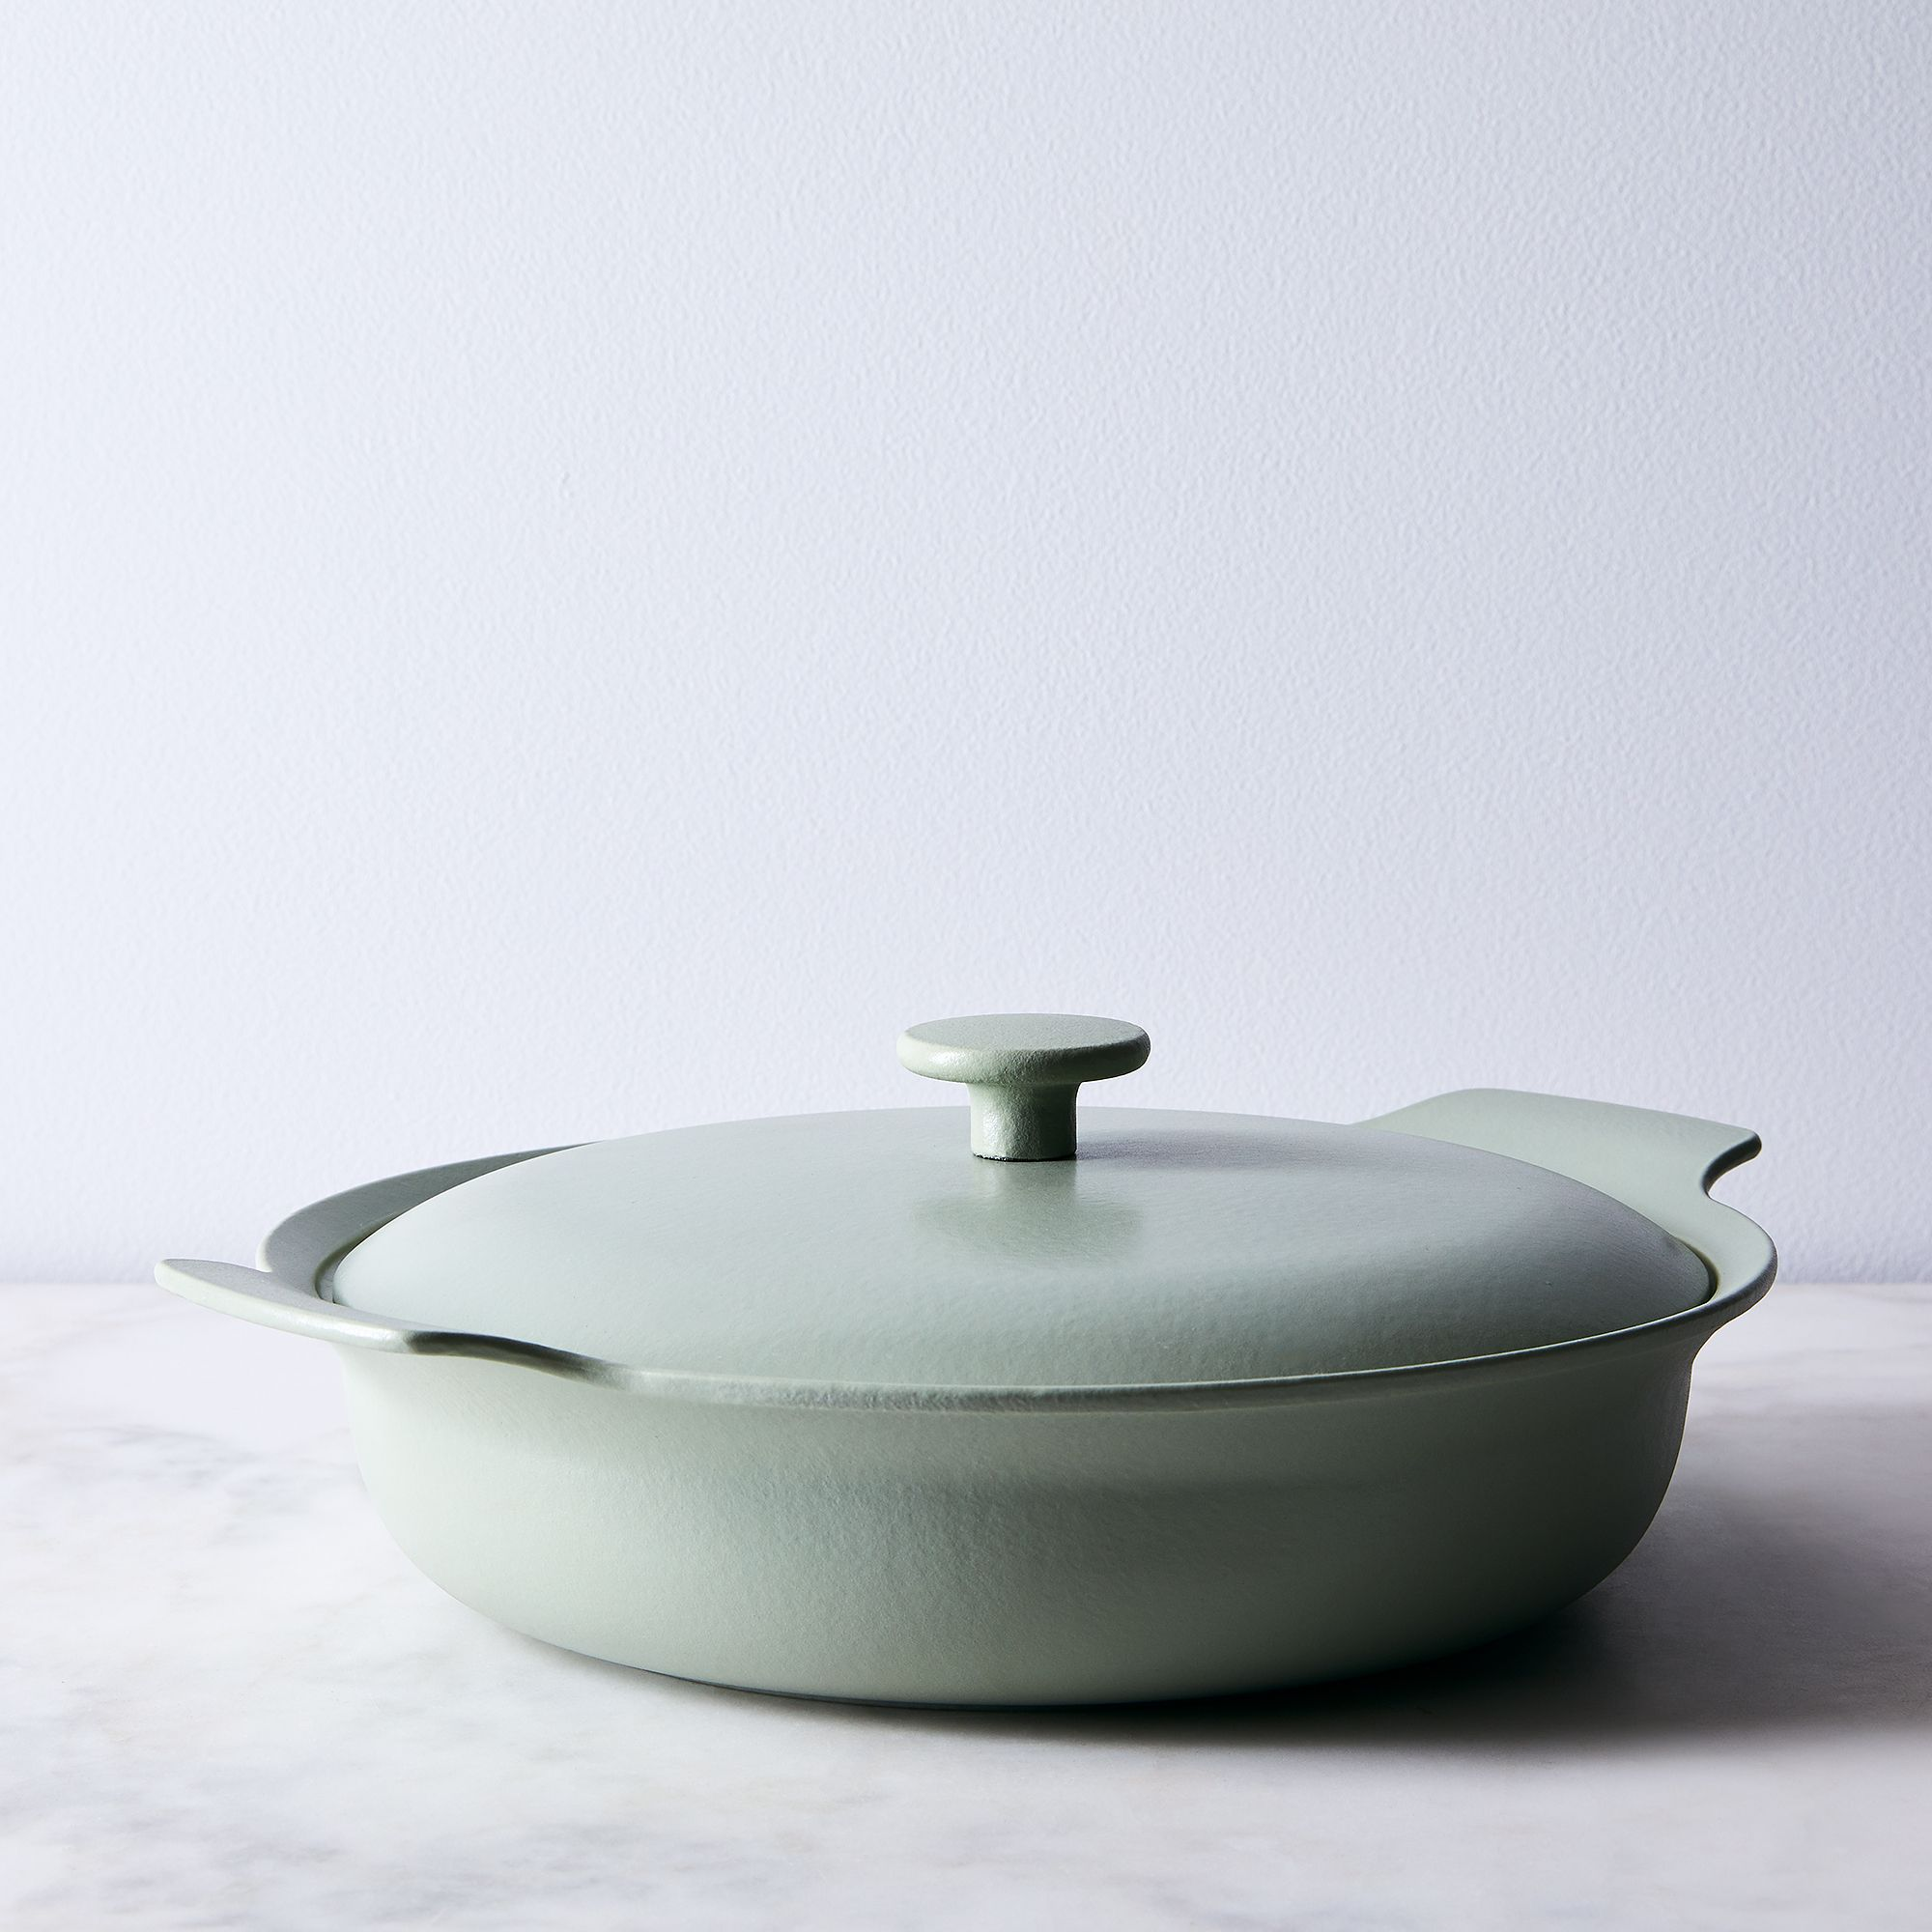 Cookware wishlist by Lydia Lepic